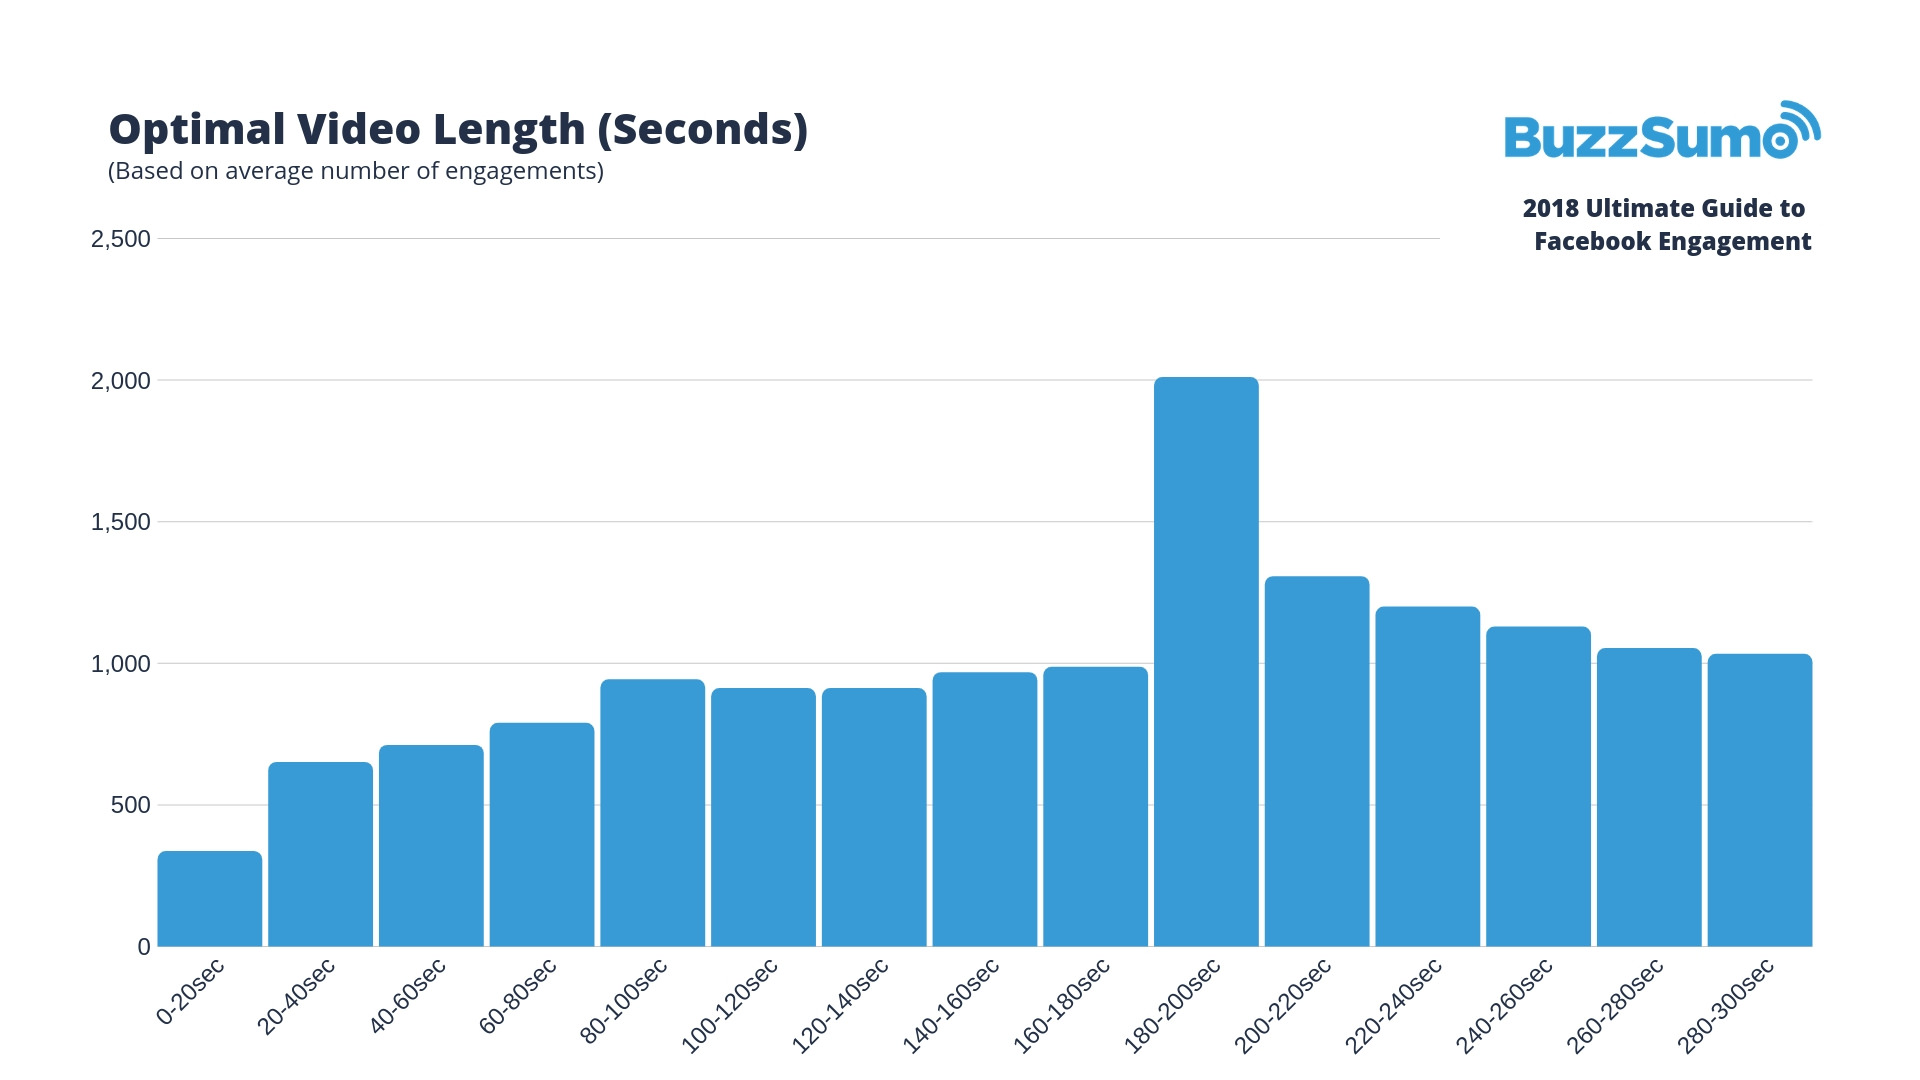 optimal video length in seconds for facebook engagement